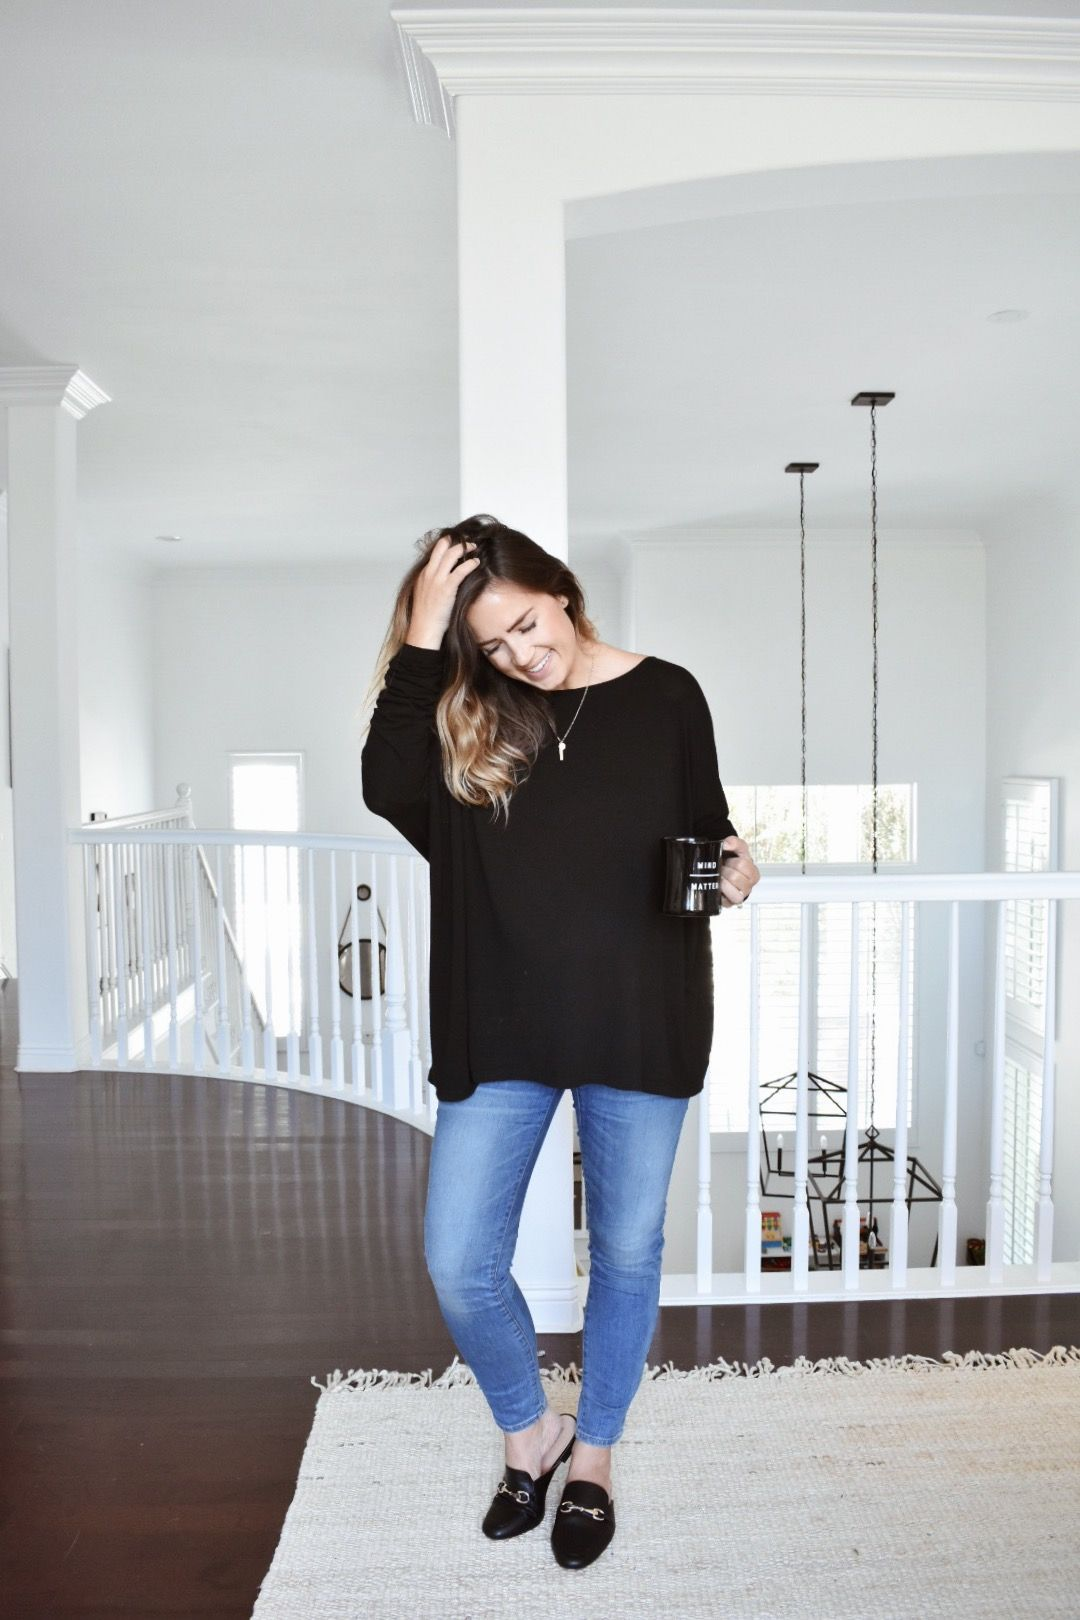 e0562756e4 Hatch Collection top   Madewell maternity jeans   Merona mule loafers    Natalie Borton necklace